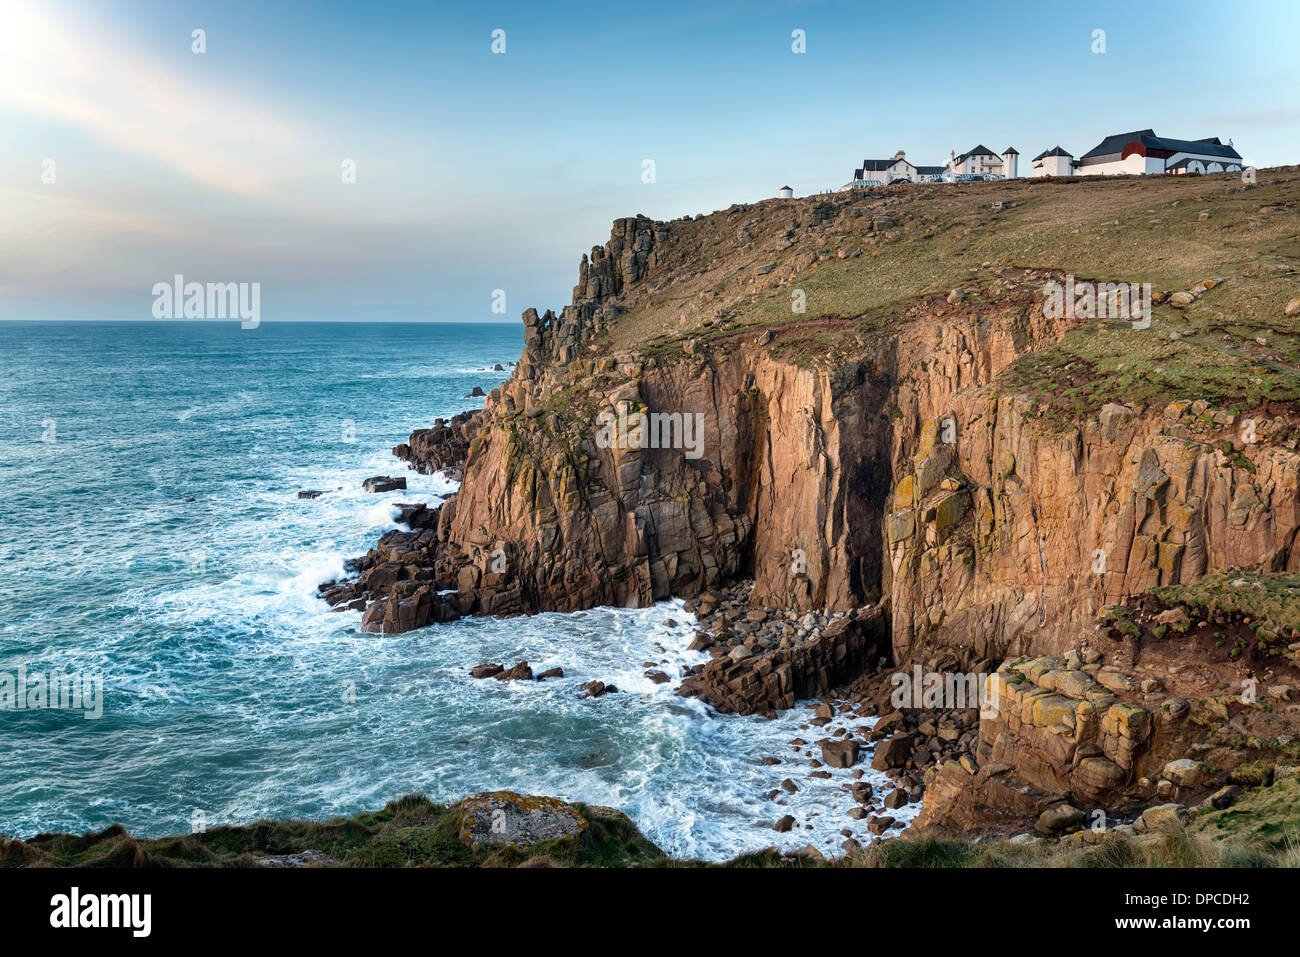 Sea and steep rugged cliffs at Lands End in Cornwall - Stock Image